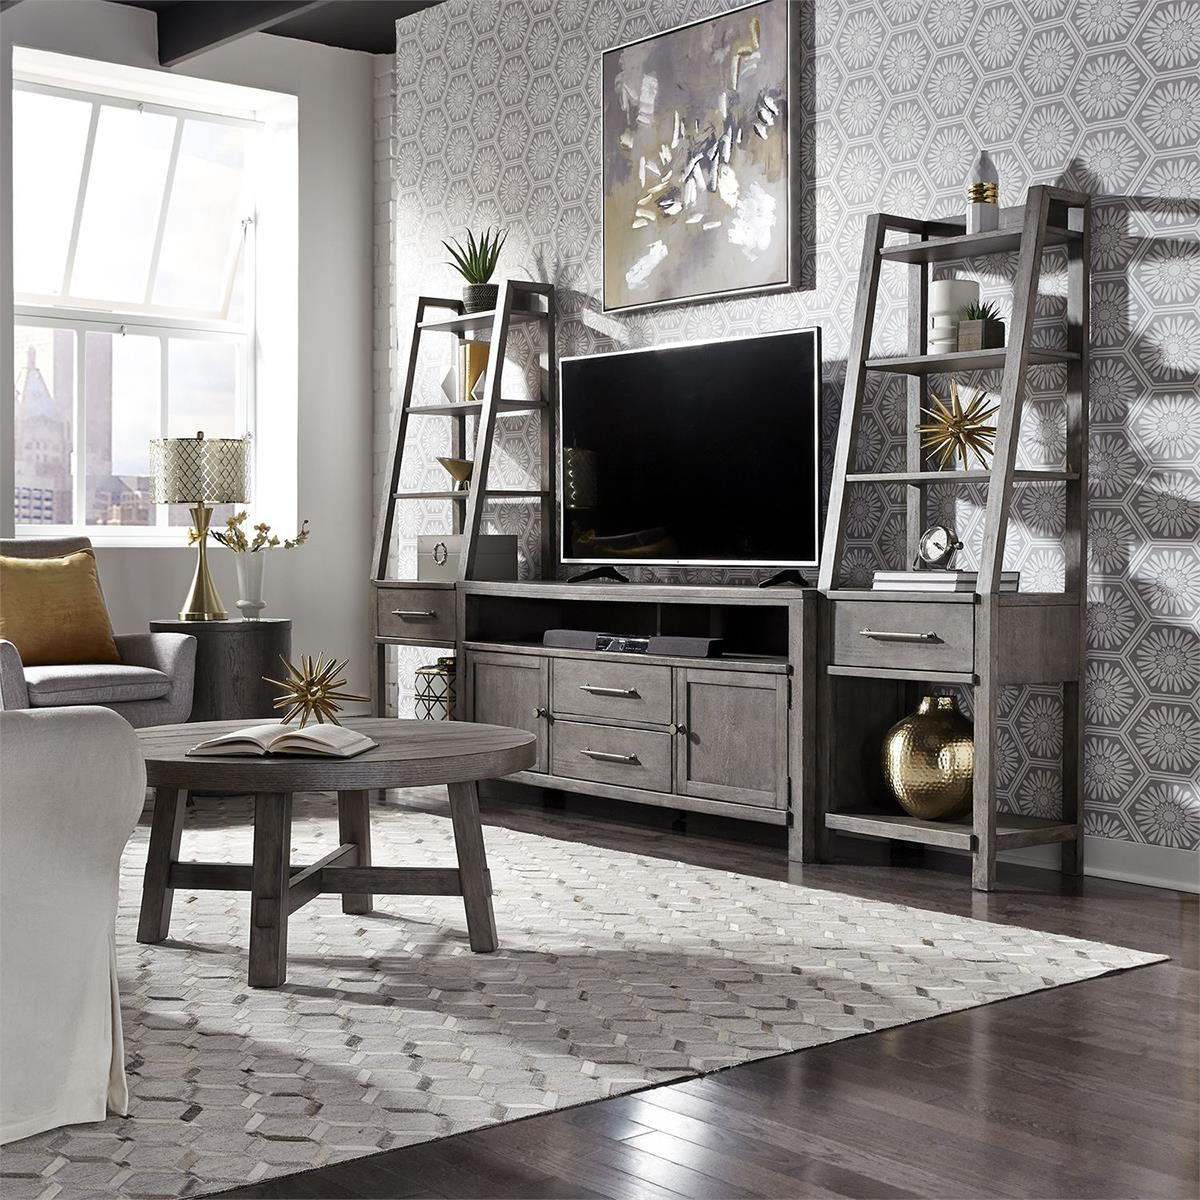 Modern Farmhouse 3 Piece Entertainment Wall by Liberty Furniture at Darvin Furniture